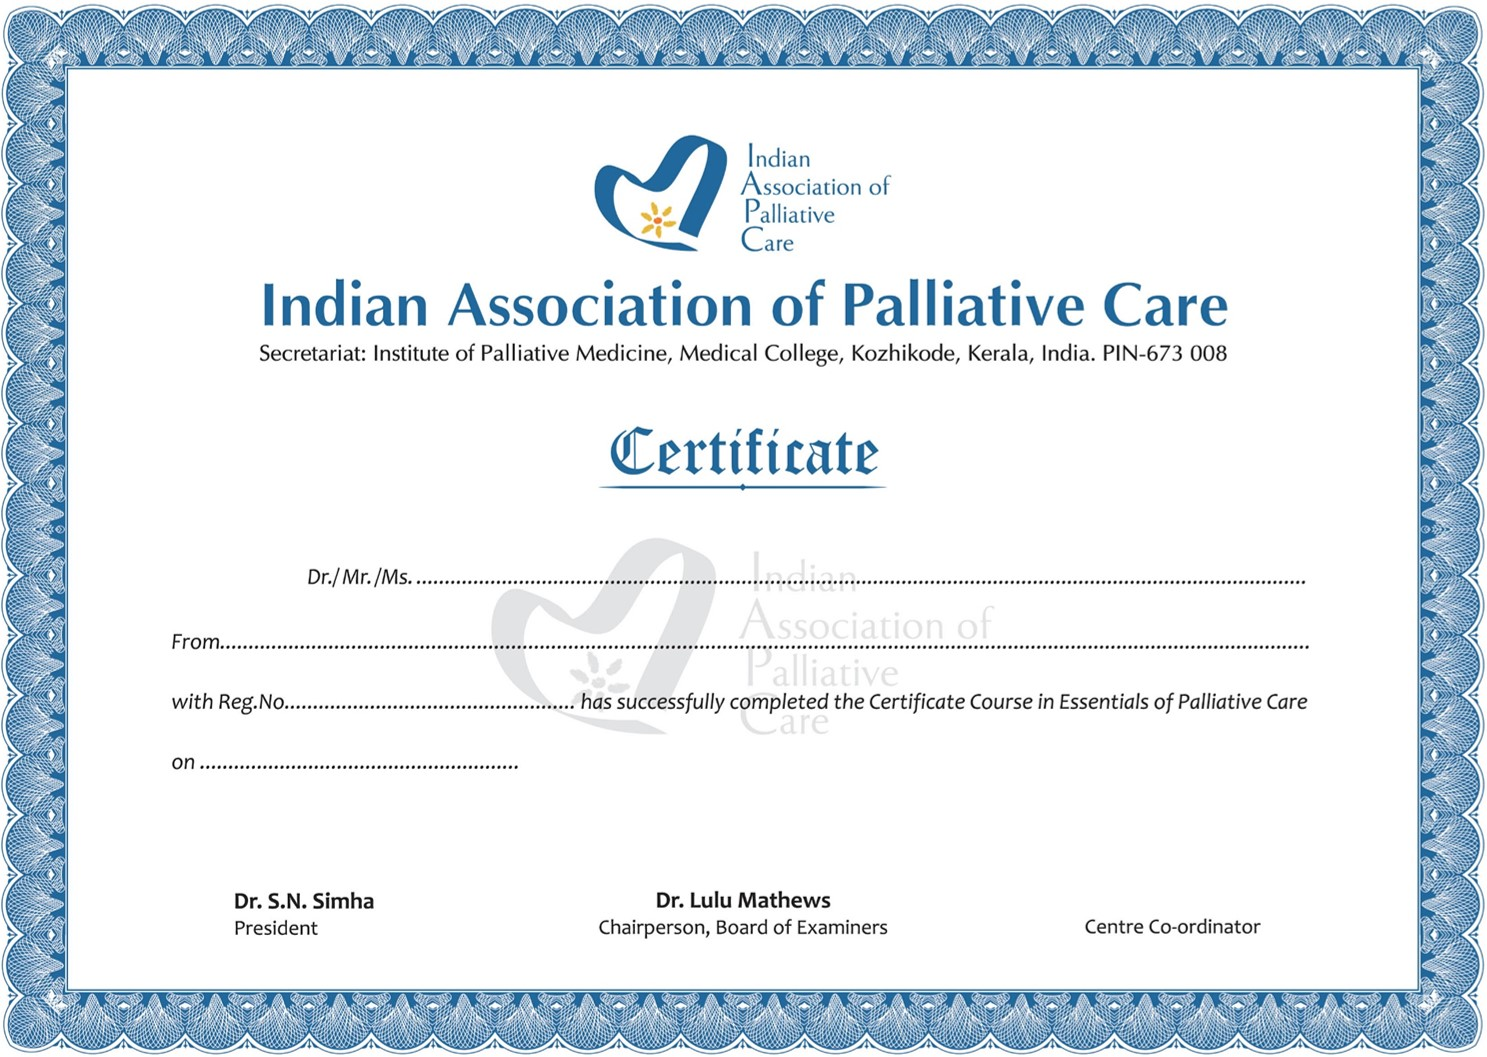 Blank IAPC certificate , results of June 2014 certificate course